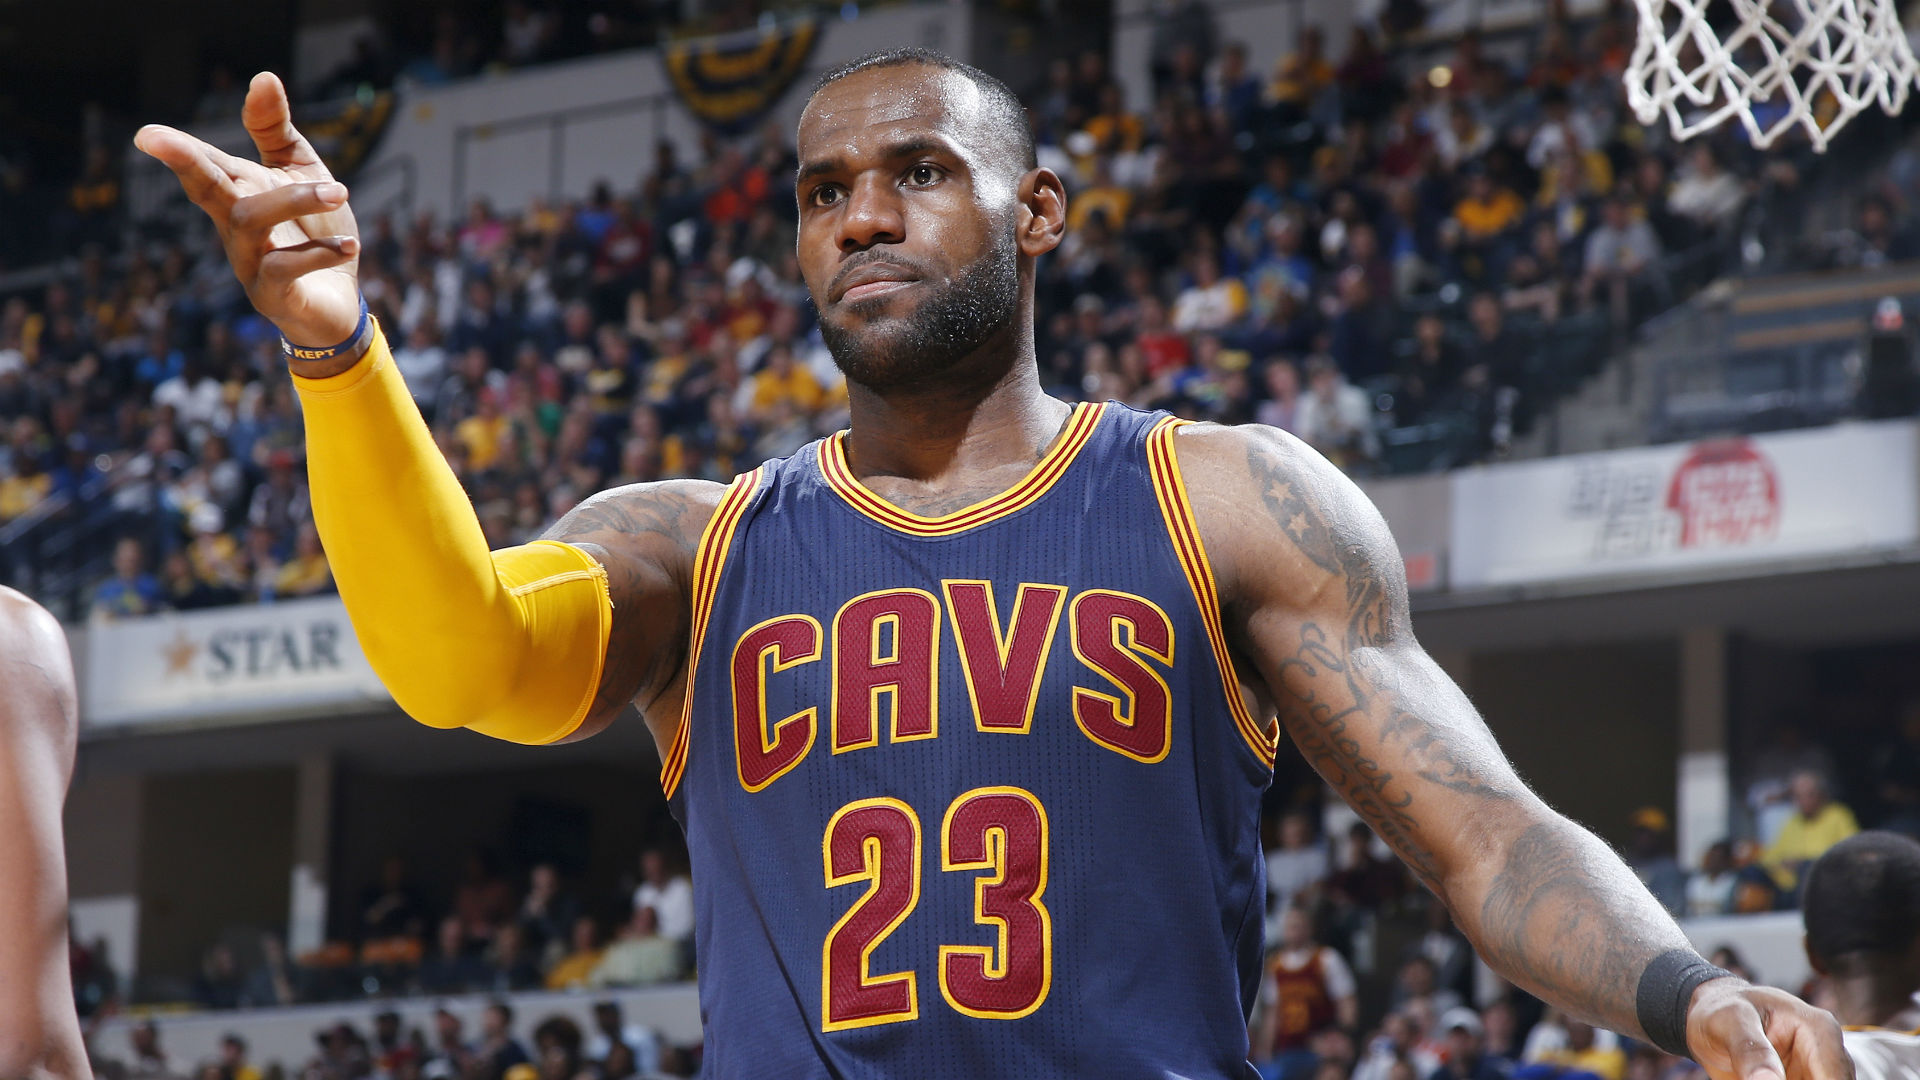 LeBron James upset over Great Lakes Brewing Co marketing him